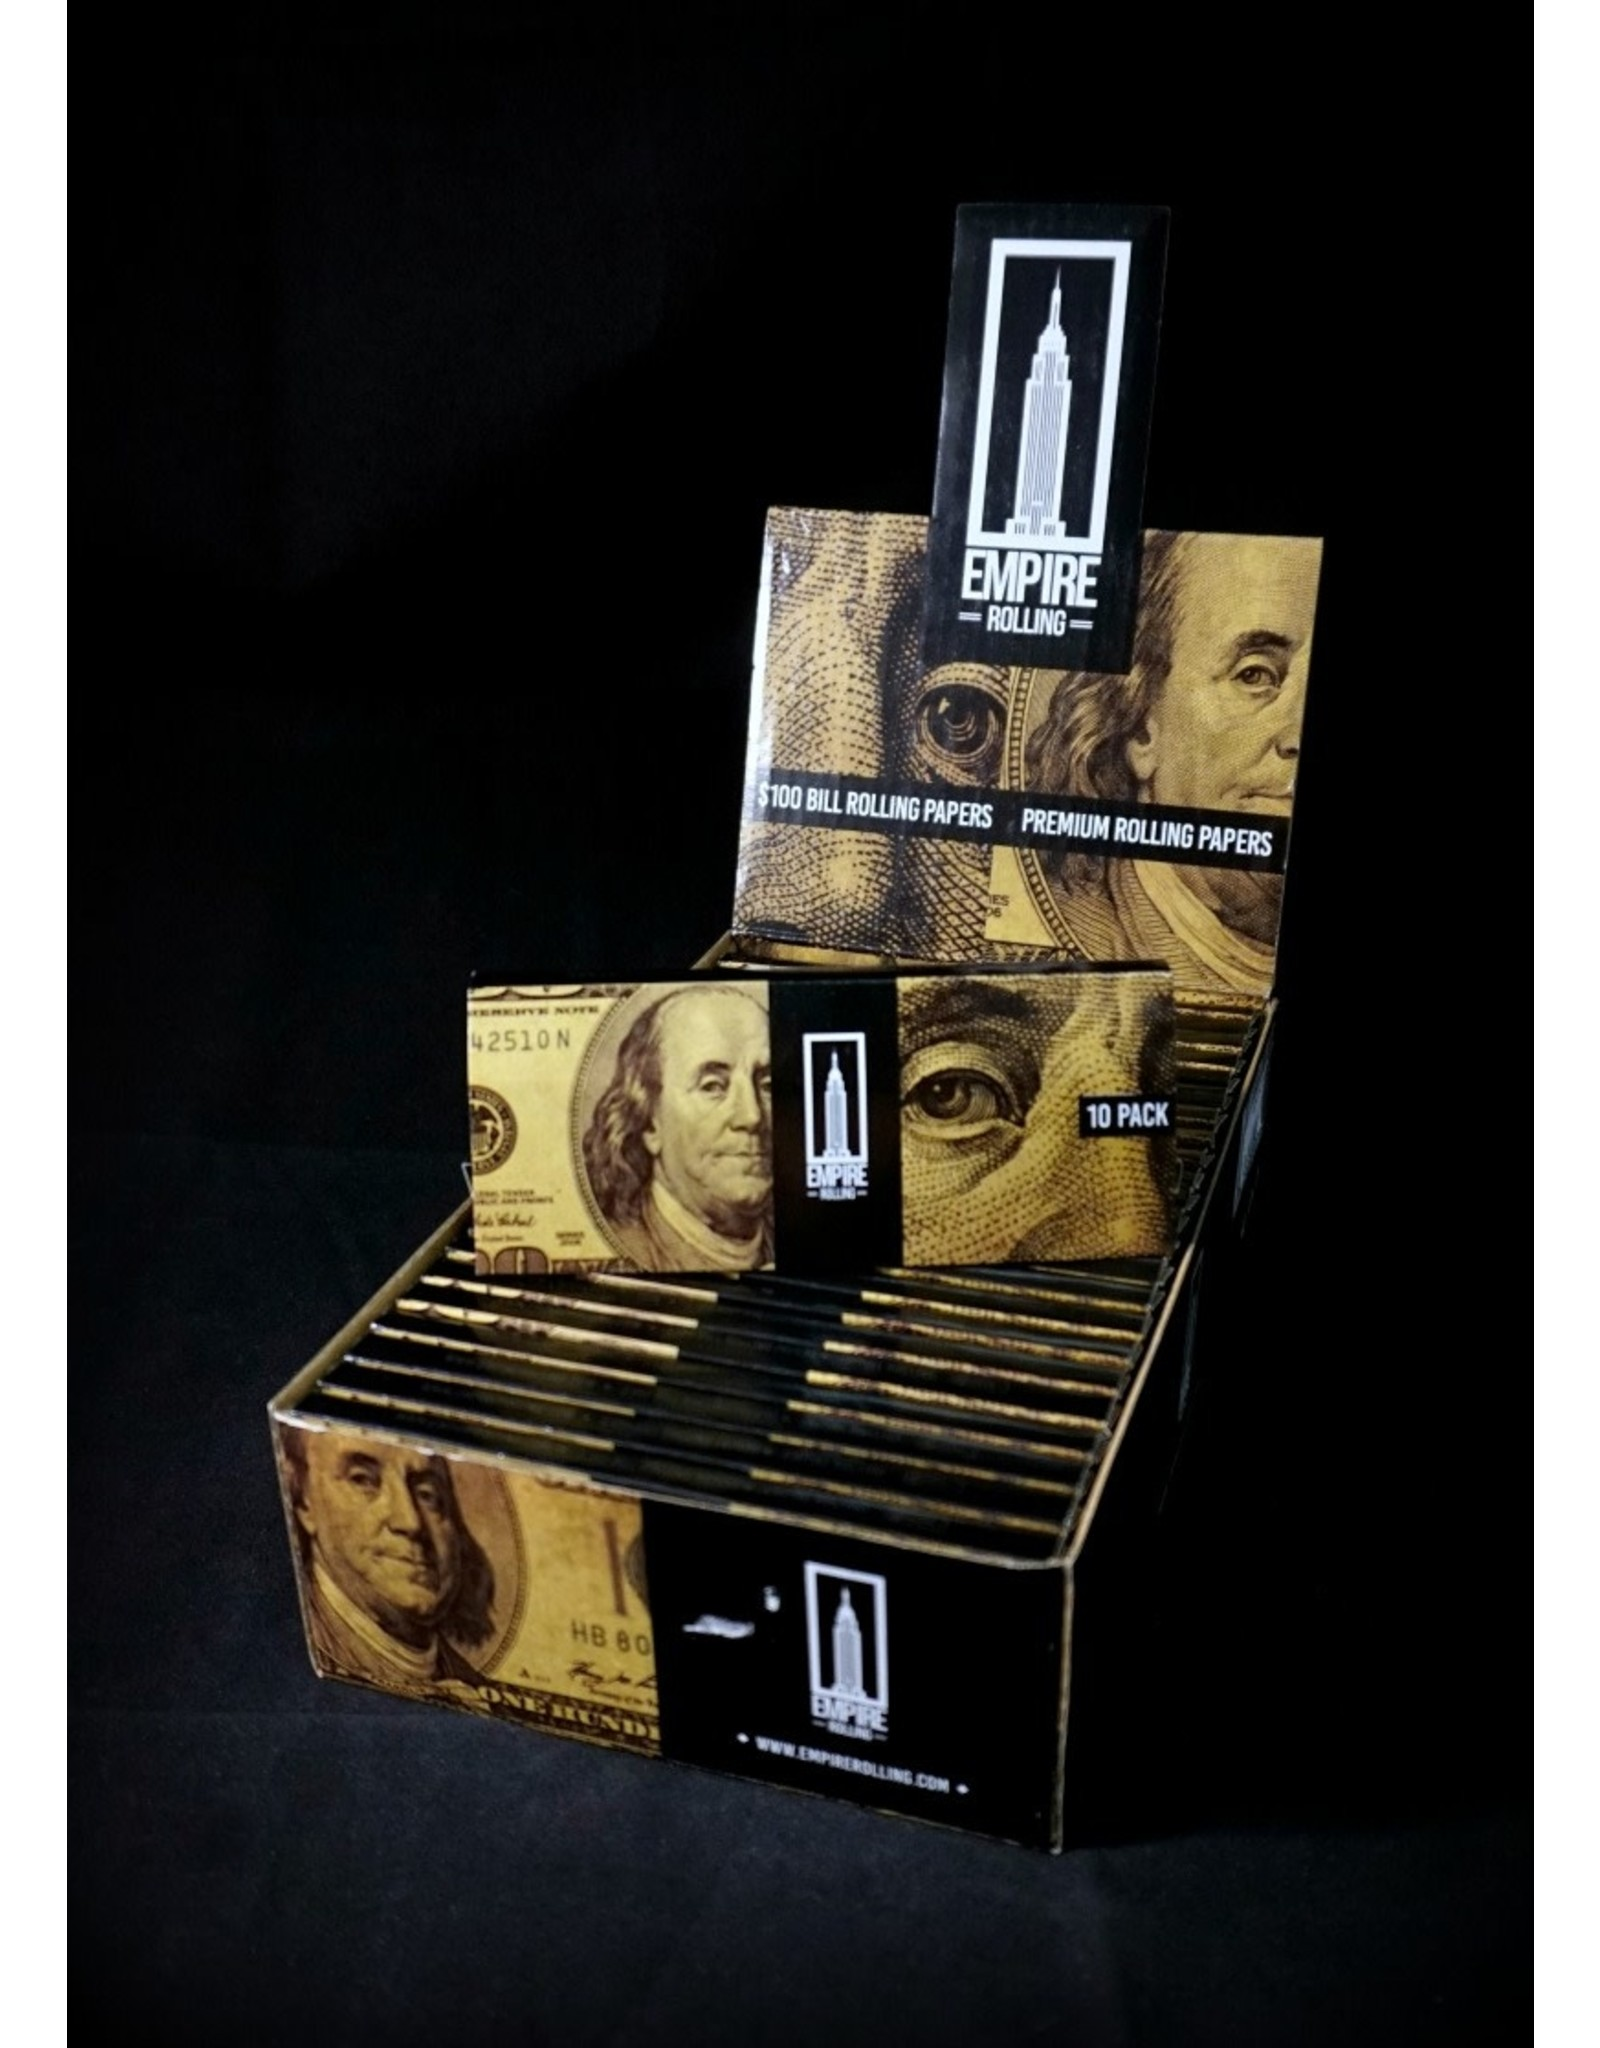 Empire $100 Bill Rolling Papers